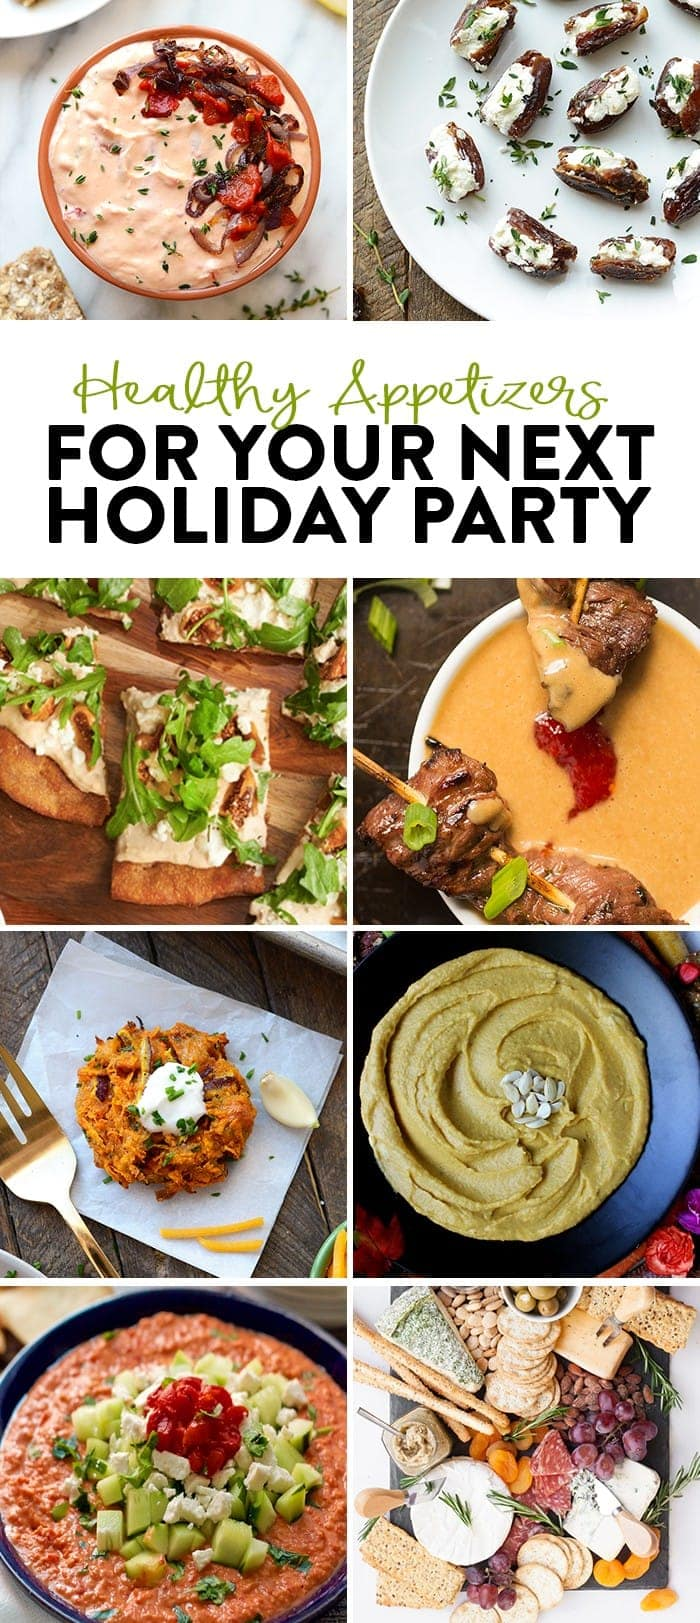 Need a few heathy appetizer ideas for your next holiday party? Look no further! Whether you like it sweet or savory...this Healthy Appetizer round-up is for you.